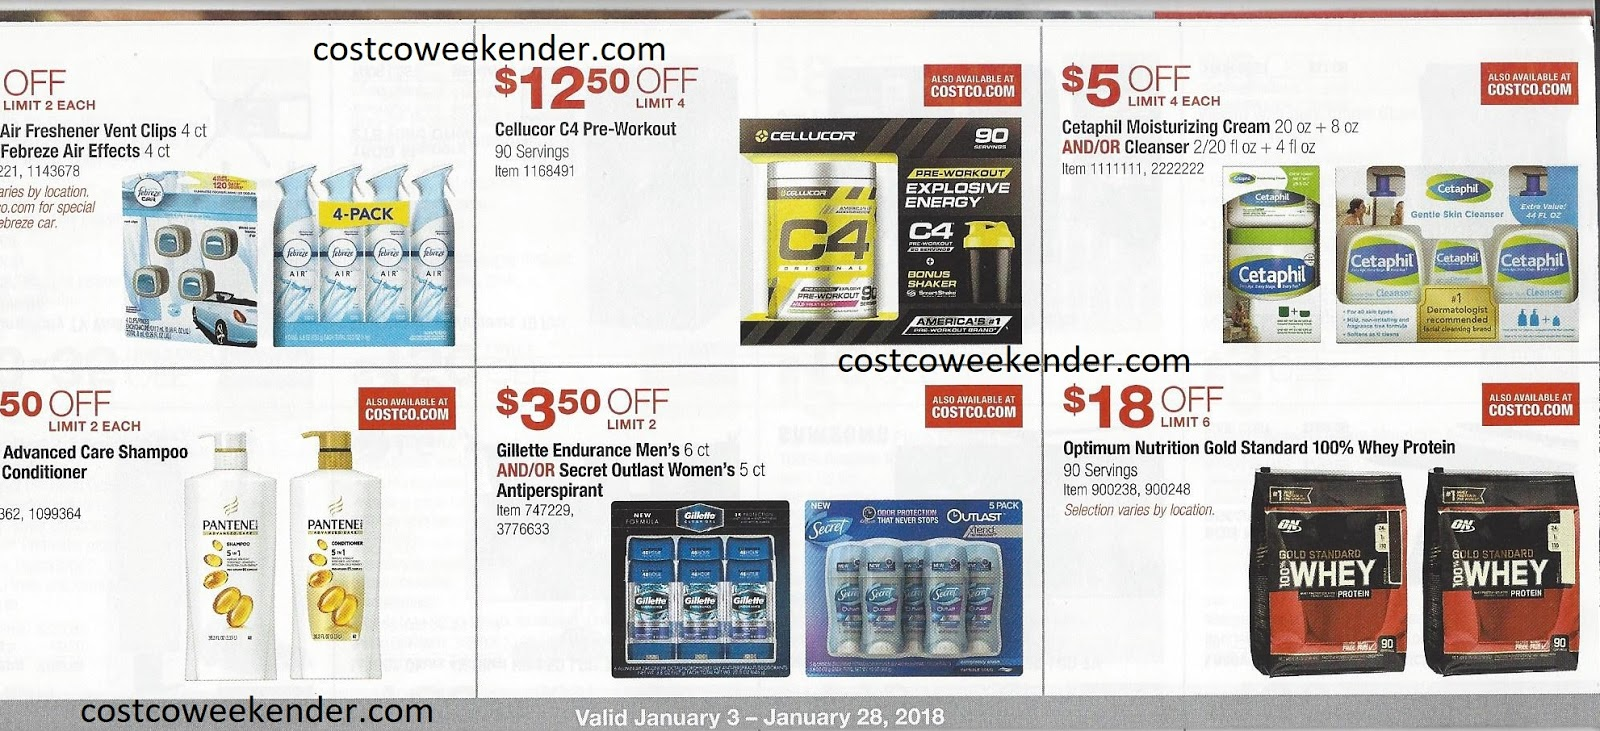 Costco coupons july 2018